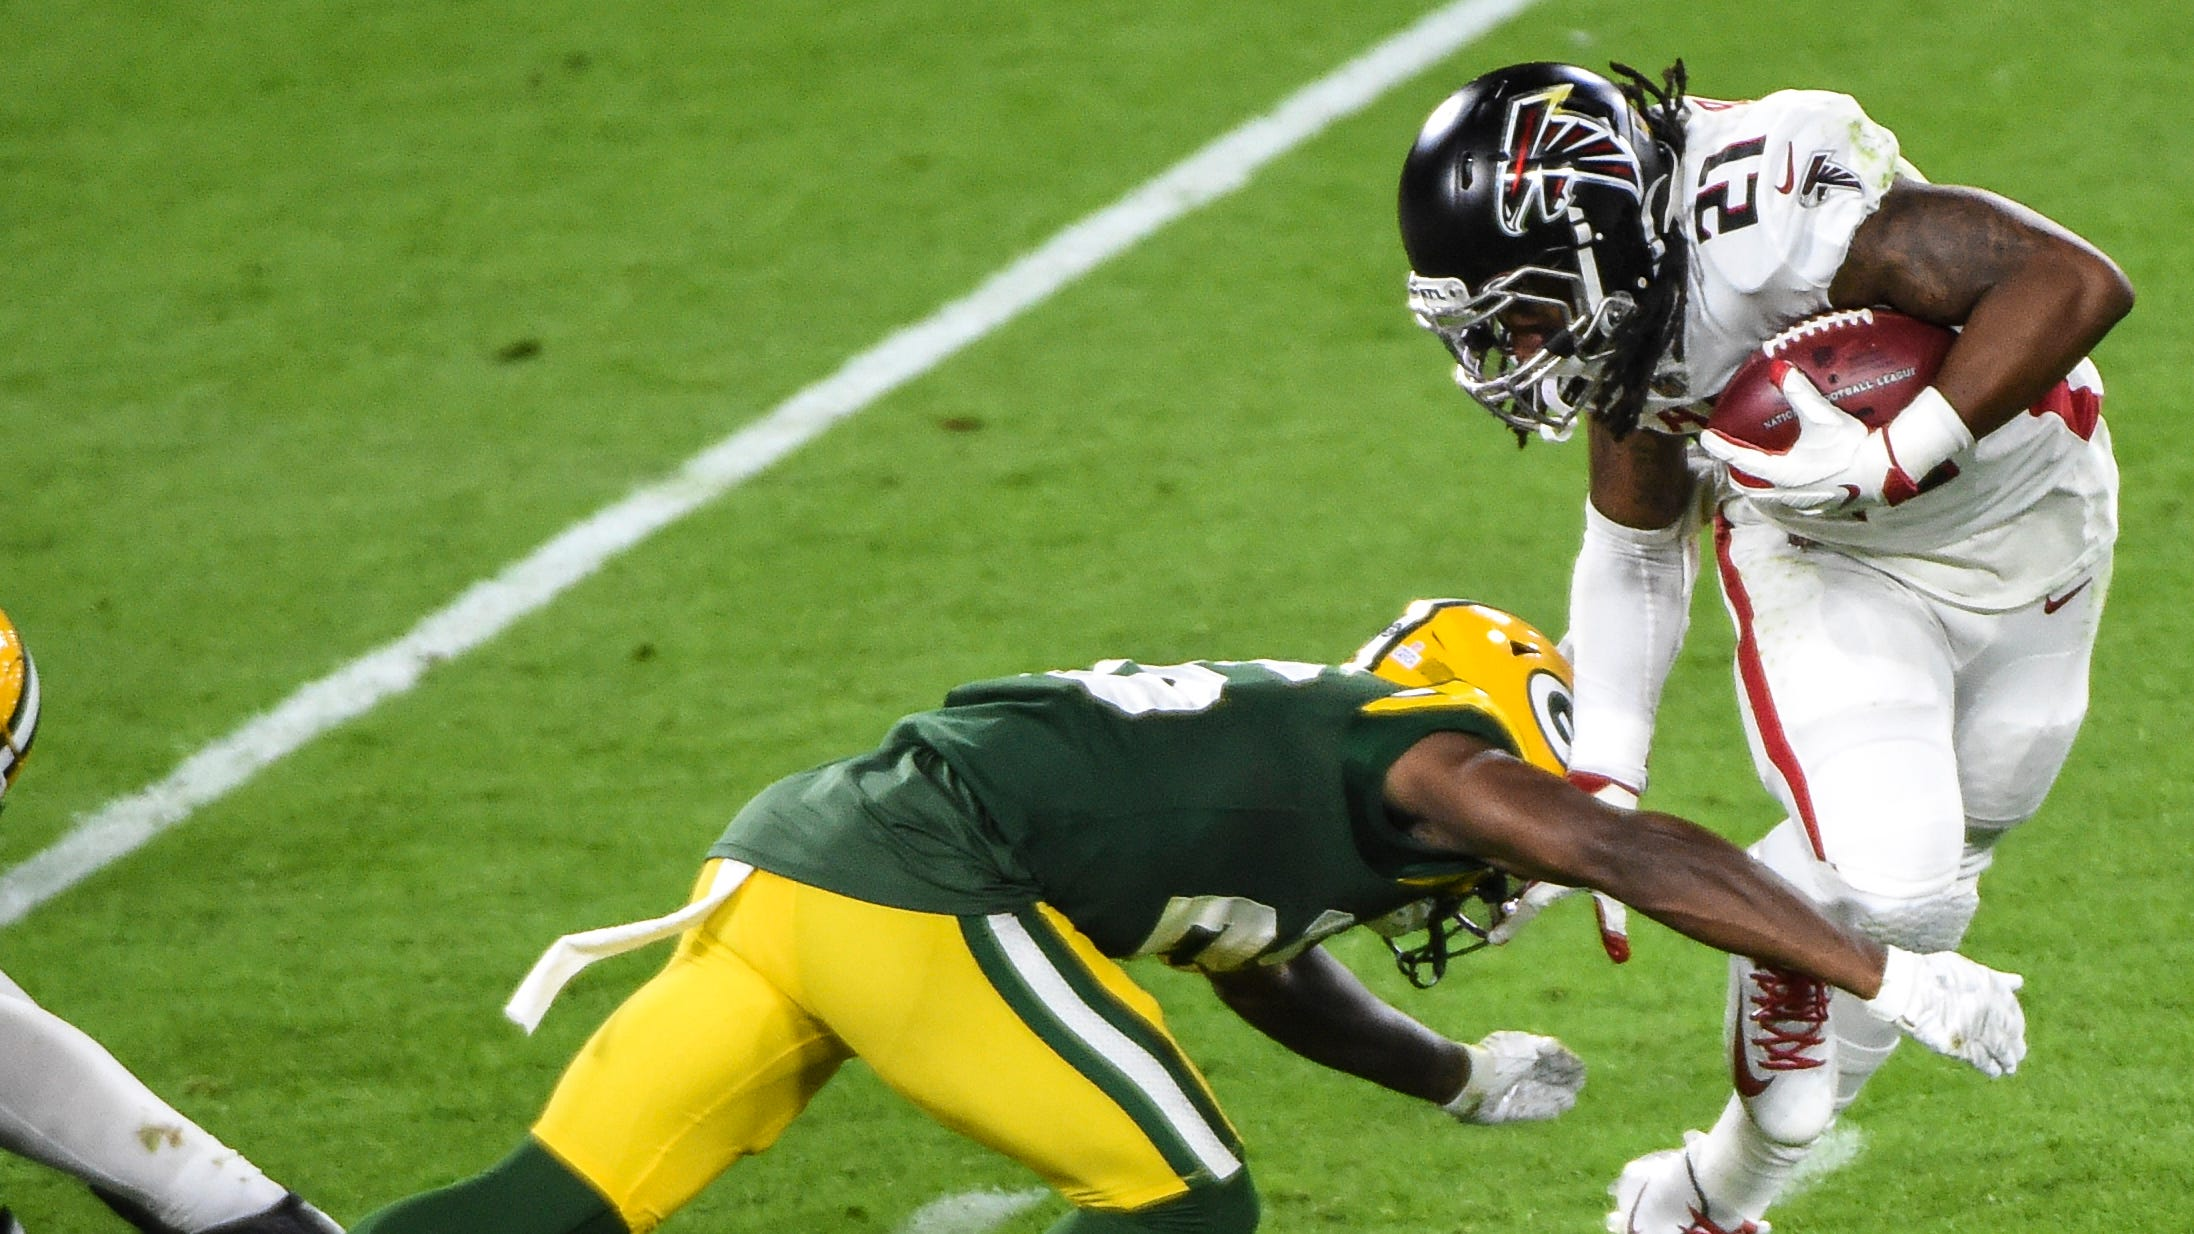 Atlanta Falcons running back Todd Gurley II (21) eludes a tackle by Green Bay Packers safety Darnell Savage.